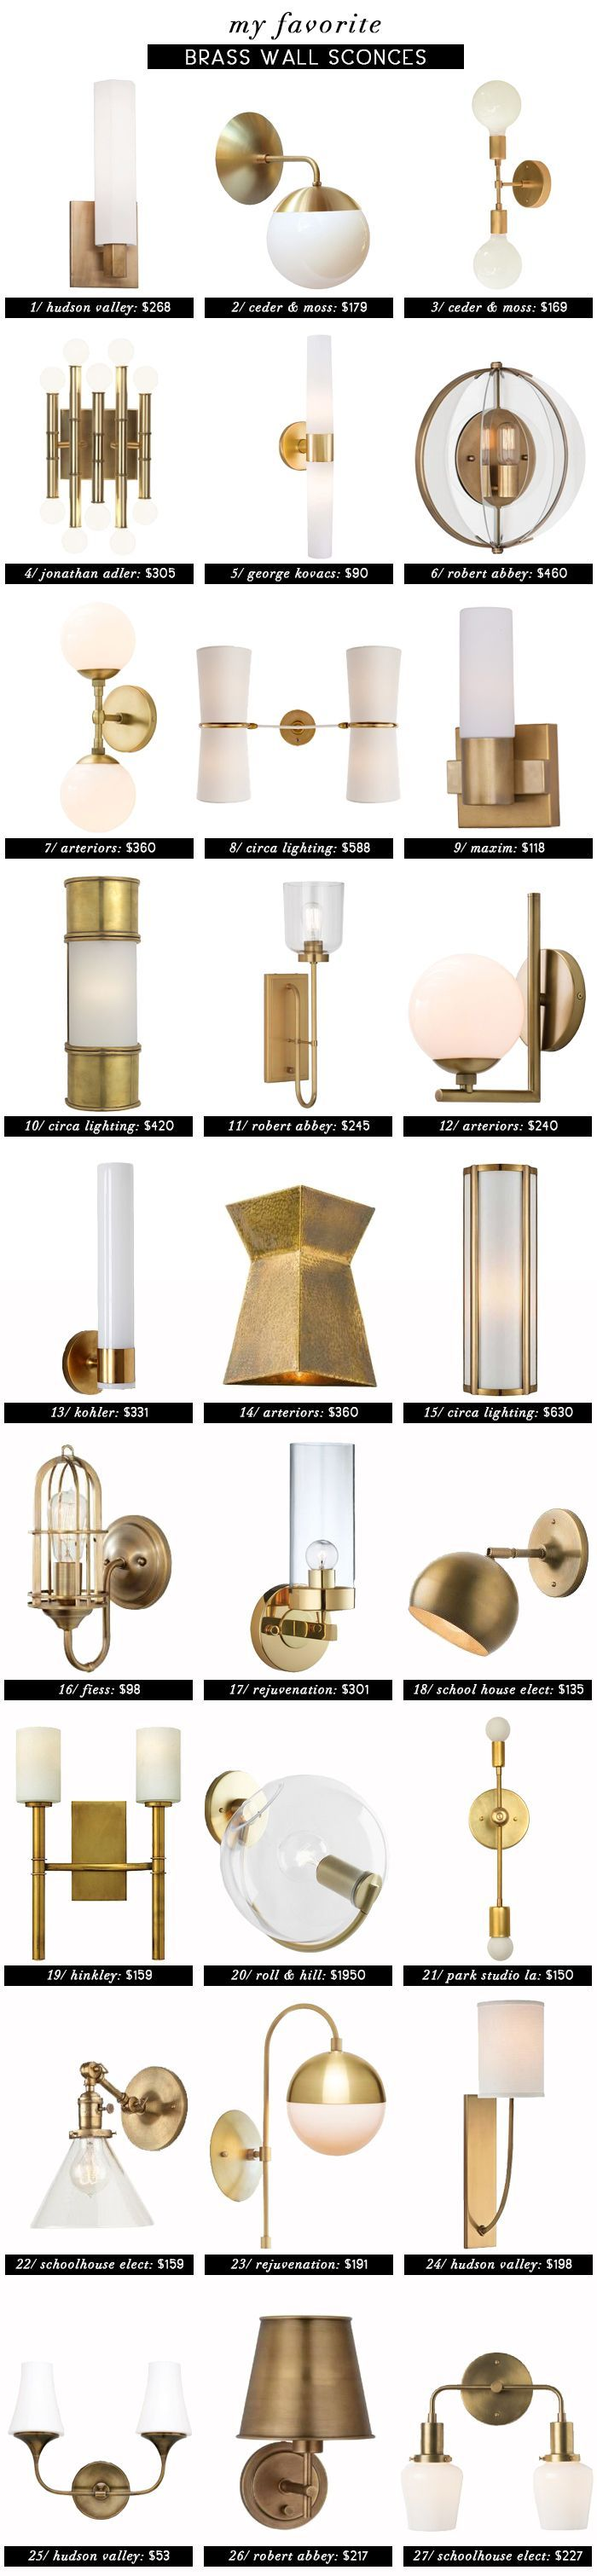 Emily Henderson_Best Brass Wall Sconces_Roundup